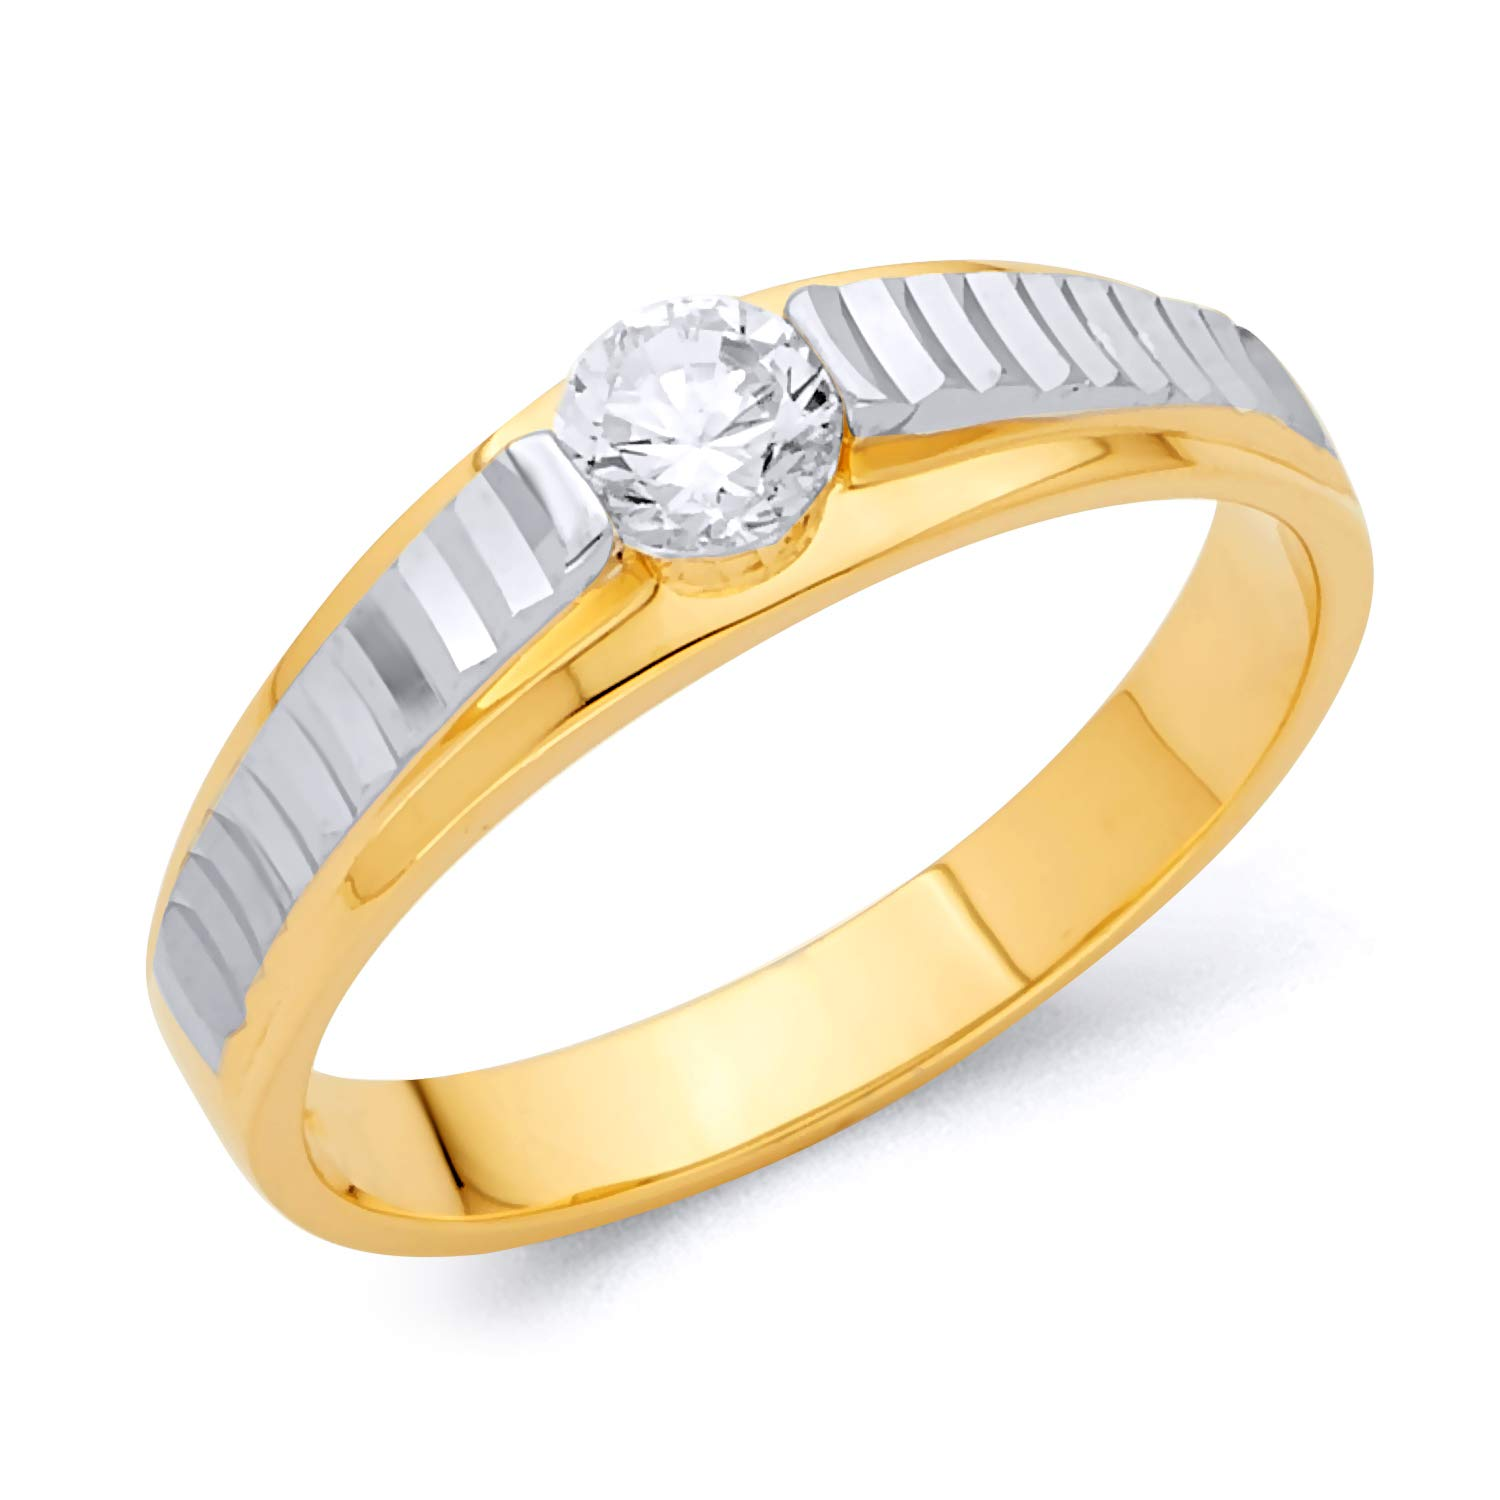 Wellingsale Mens 14K Two 2 Tone White and Yellow Gold Polished CZ Cubic Zirconia Wedding Ring Band